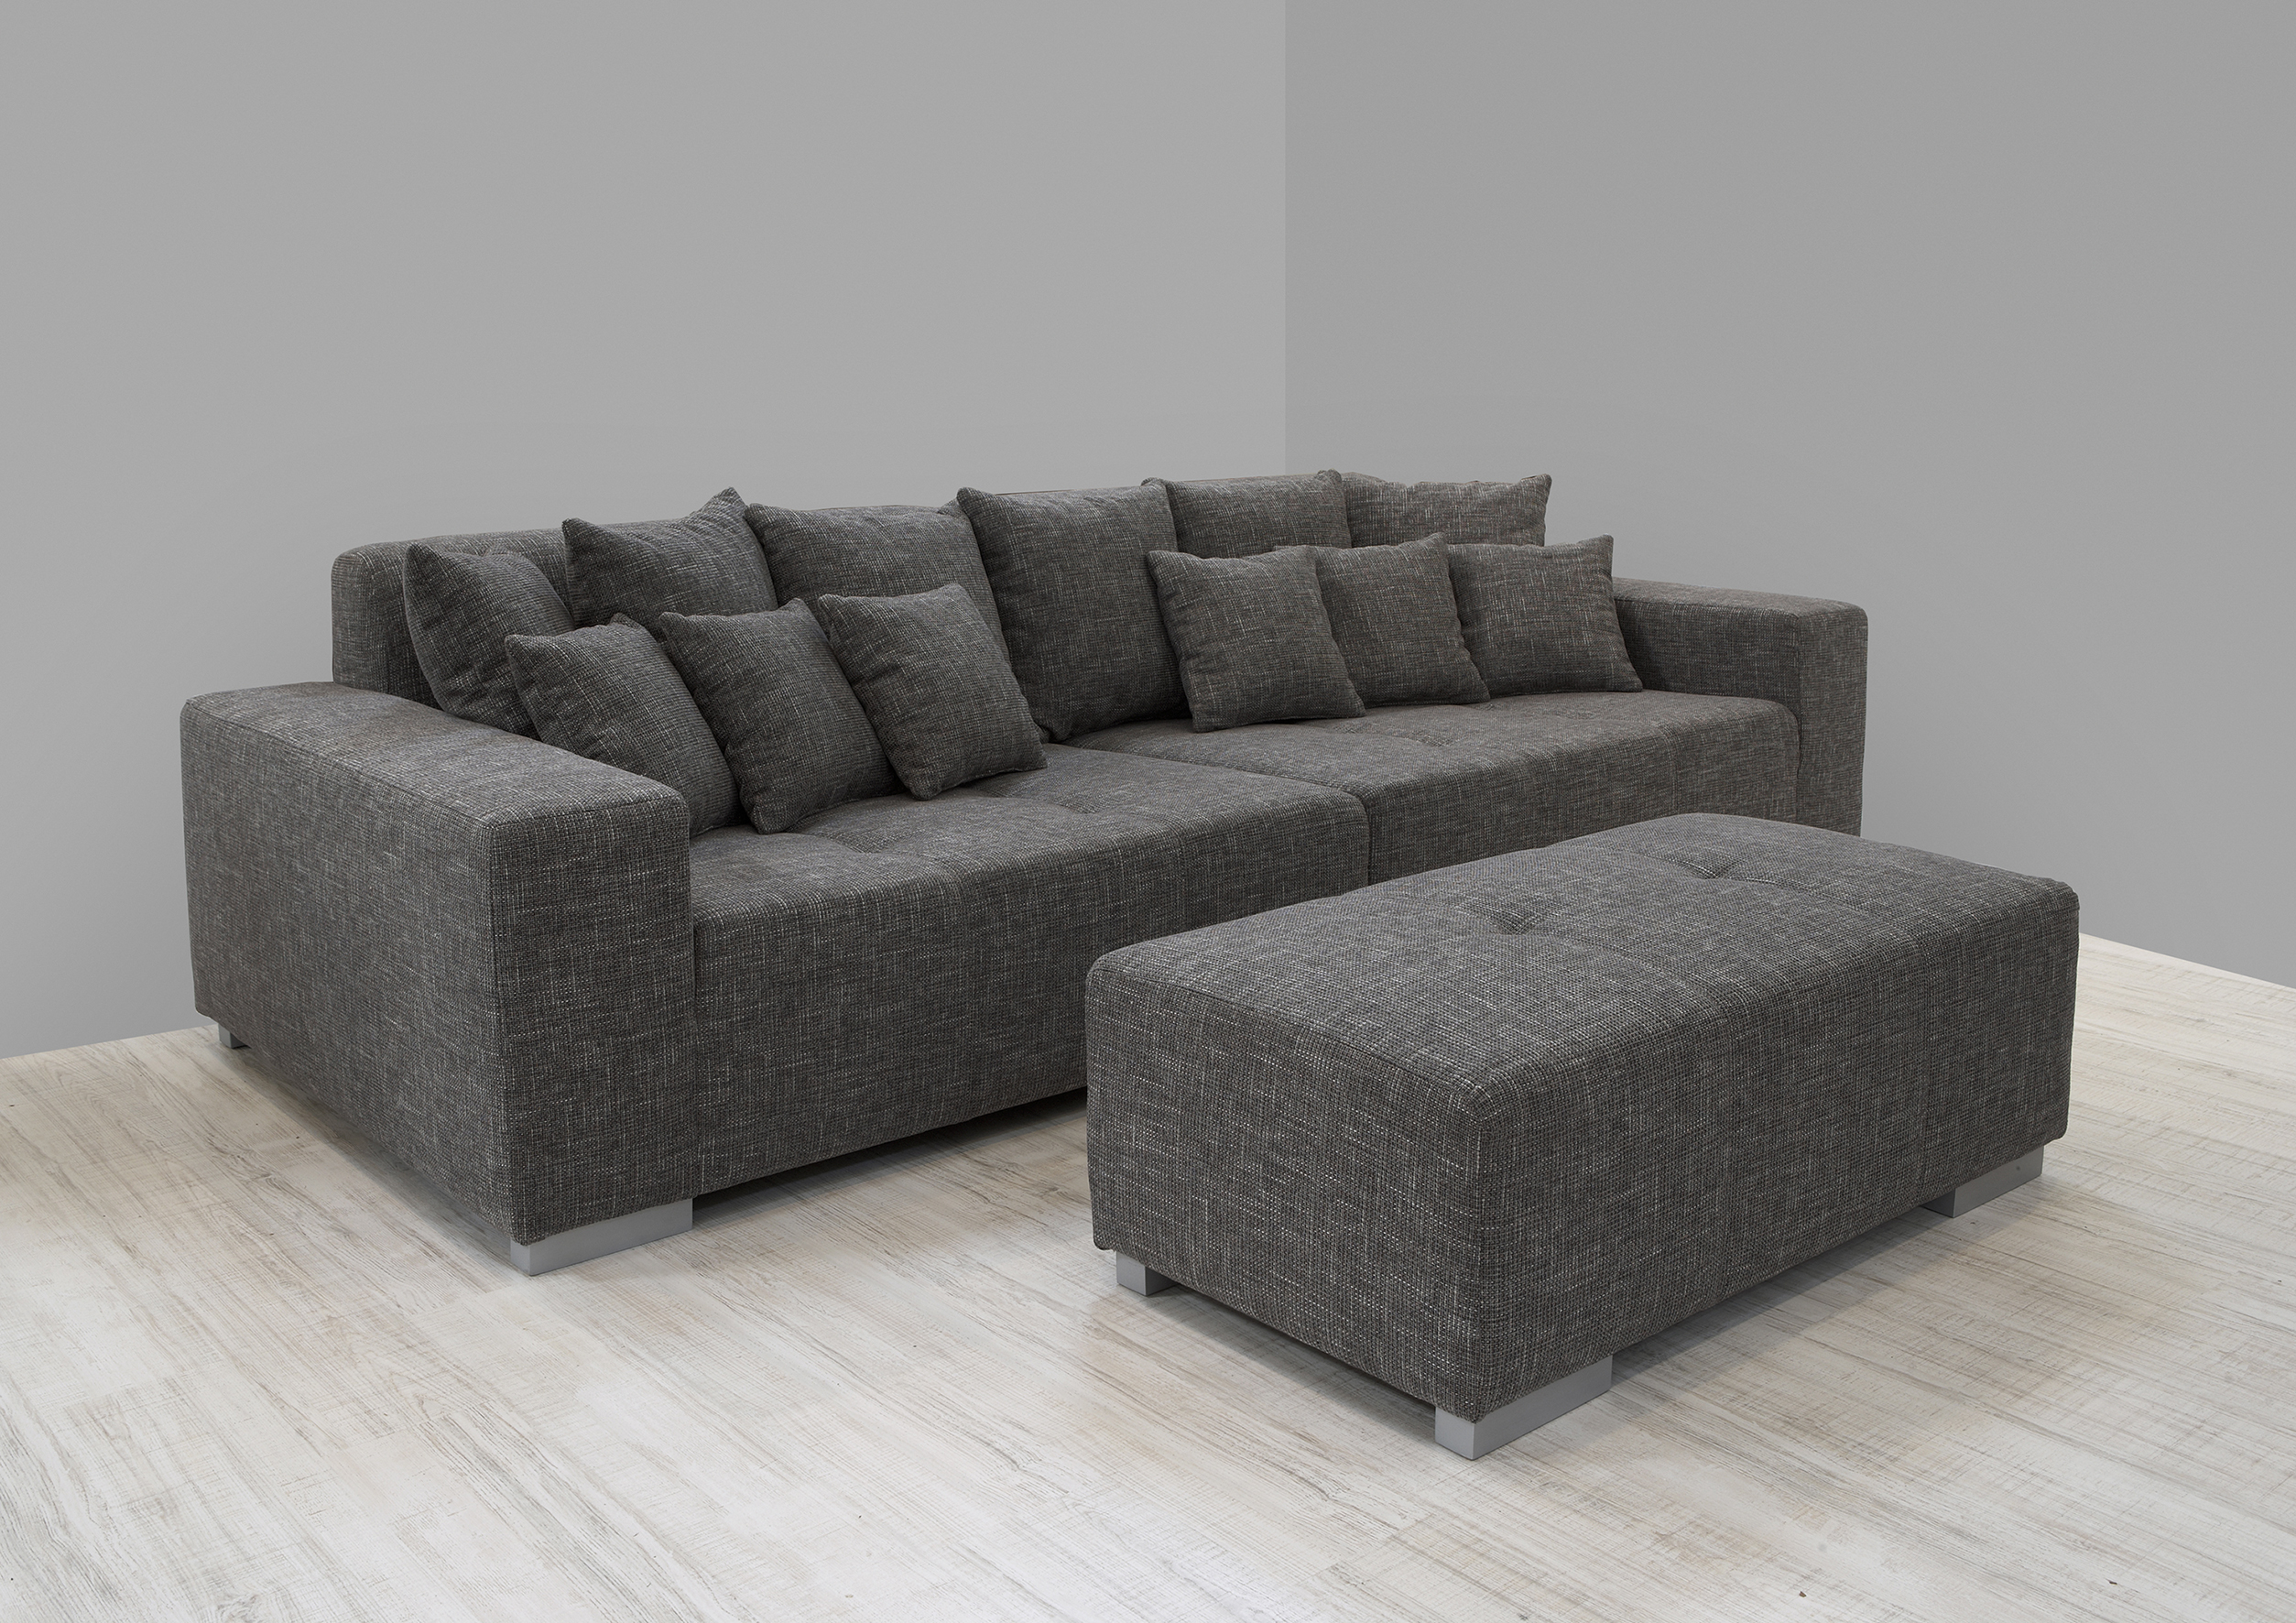 megasofa big sofa ariva inklusive kissen megasofa bigsofa sofas couches wohnzimmer. Black Bedroom Furniture Sets. Home Design Ideas